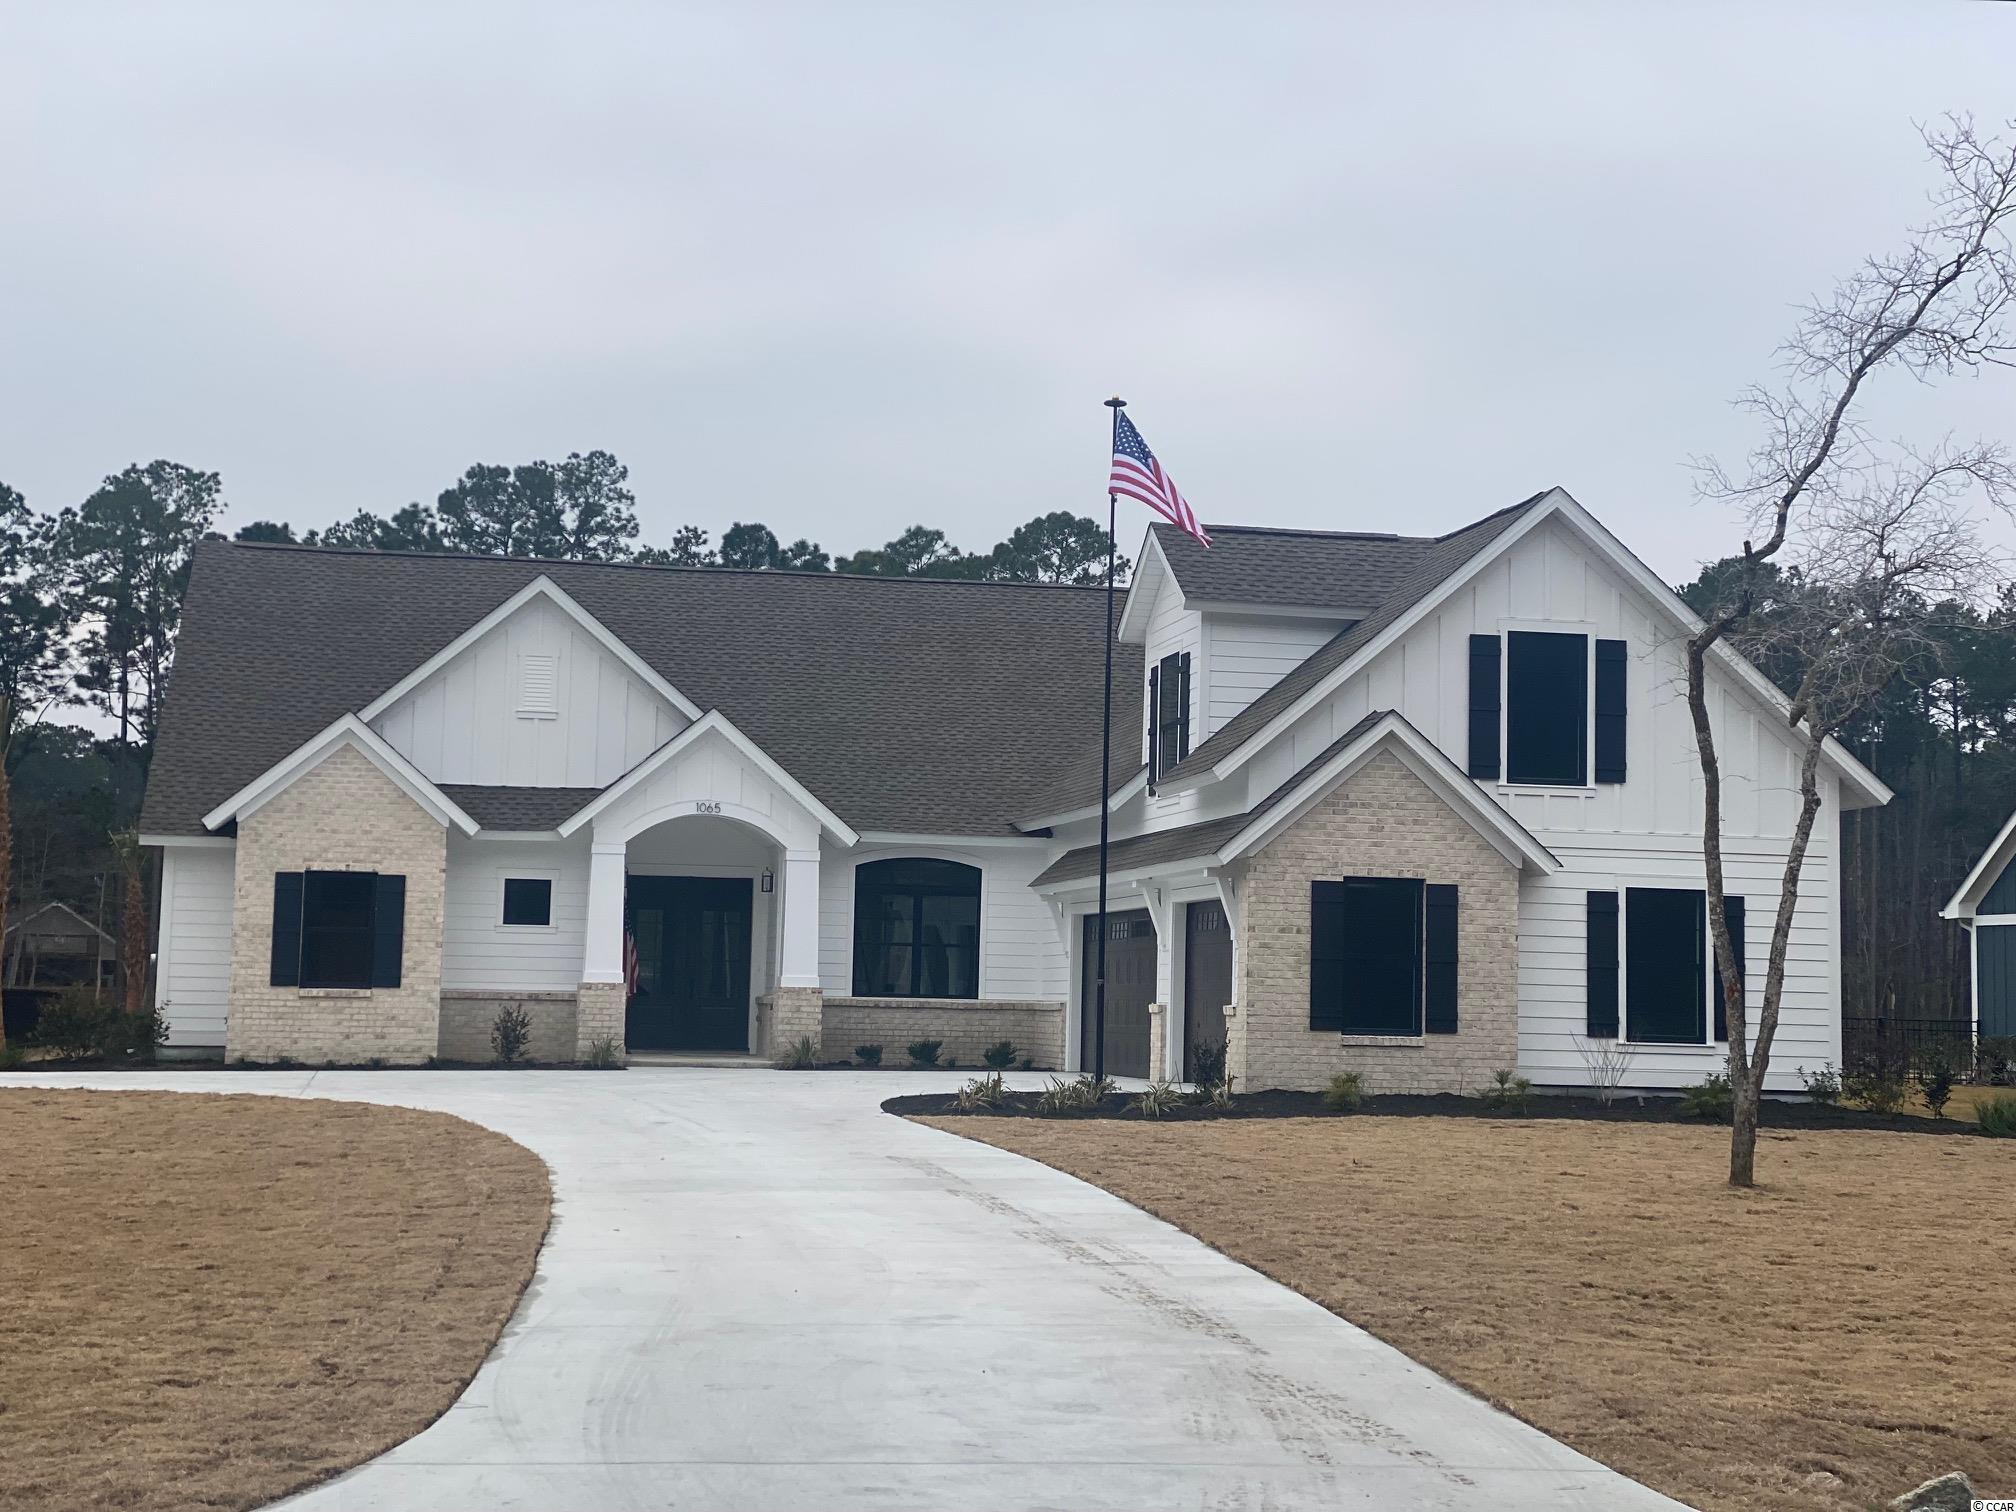 "Welcome to BEAUMONT PARK in Pawleys Island!  New development just minutes from the beach, restaurants, grocery stores and more. One acre home site with NO HOA. Custom builder. This  Carolina  home  plan s to be built with approx. 2700 Heated Square Feet.  Contemporary craftsman style 3 bedroom, 2.5  bath home with Hardie plank, shake, board & batten siding along with brick accenting exterior. An ""optional "" Bonus Room could be 4th bedroom. Bonus room is not included in listed price. This is an additional cost.  Two car attached garage.   A beautiful covered front porch plus a back covered veranda, a second covered patio off breakfast area and an additional patio off of the covered veranda!!! So many places  to enjoy your morning coffee or afternoon cocktail with friends. This home has many amazing features such as 10 foot ceilings in main living area and covered veranda,the bedrooms have 9 ft ceilings and  8 ft ceilings on second floor.  Rounded sheet rock corners, crown molding in main living areas.  An open floor plan with a large great room, dining and breakfast nook. The  Master suite has tray ceilings and master bath boosts double vanities, garden tub,  tile shower and his/her walk in closets. Beautiful interior with crown molding, tile floors throughout main living area, granite counter tops in kitchen and master bath, custom cabinets. The main living areas and master bedroom have tile flooring or hardwood flooring and other bedrooms are carpet. The additional two bedrooms are a split bedroom floor plan and a jack n jill  bathroom has cultured marble counter tops and tile flooring. Come see this beautiful home and start living the Pawleys Island lifestyle! Photos may show features NOT included in base price. Optional upgrades available upon request. .Disclaimer: Storm water plan may change to gain use of undisturbed area at the back of each lot. A retention pond will run along the back of property near property line. There will still be plenty of space for a great backyard. Please inquire for details, price is subject to change."